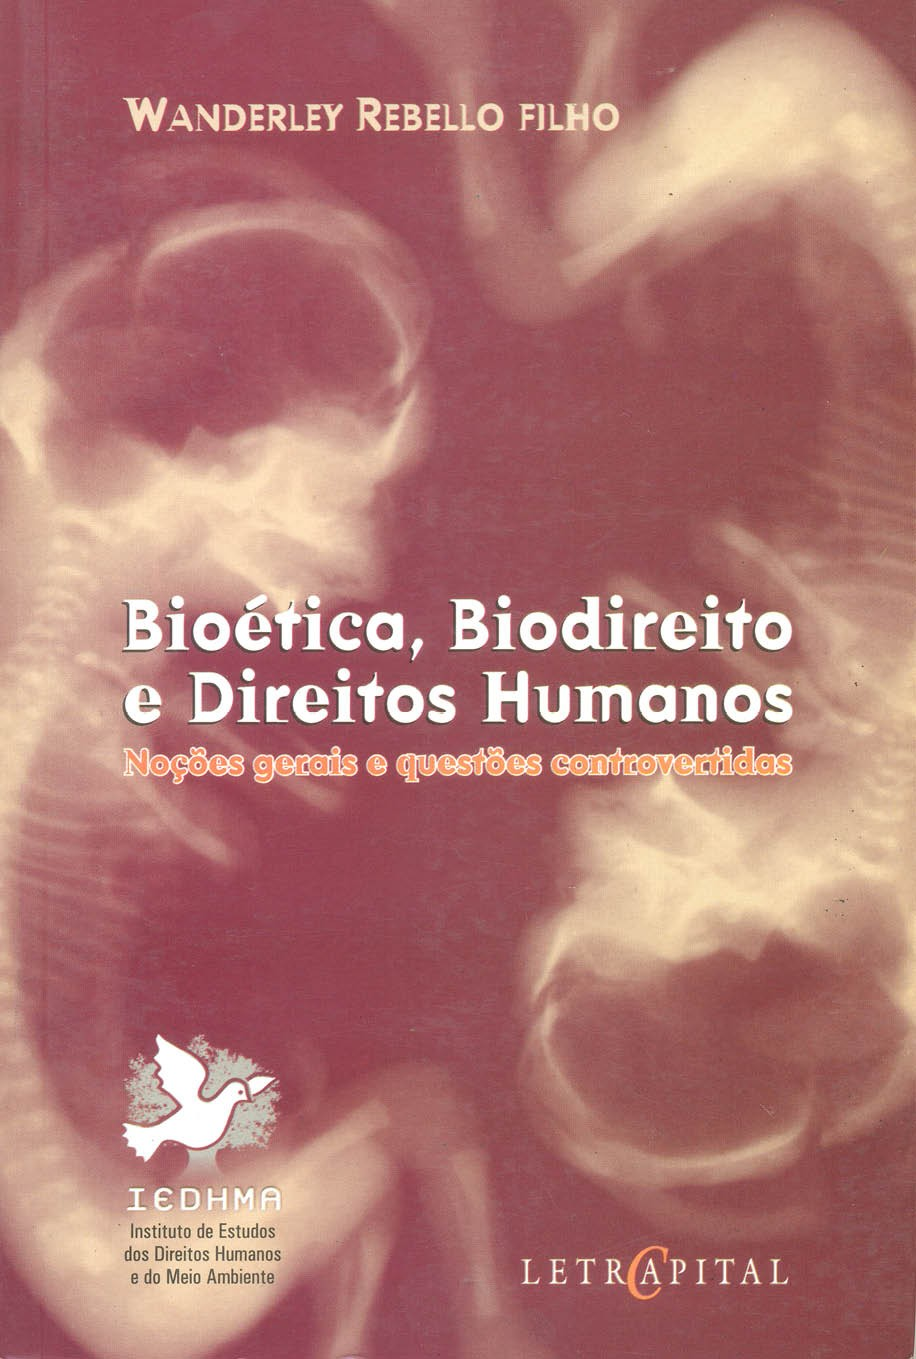 Bioética, Biodireito e Direitos Humanos